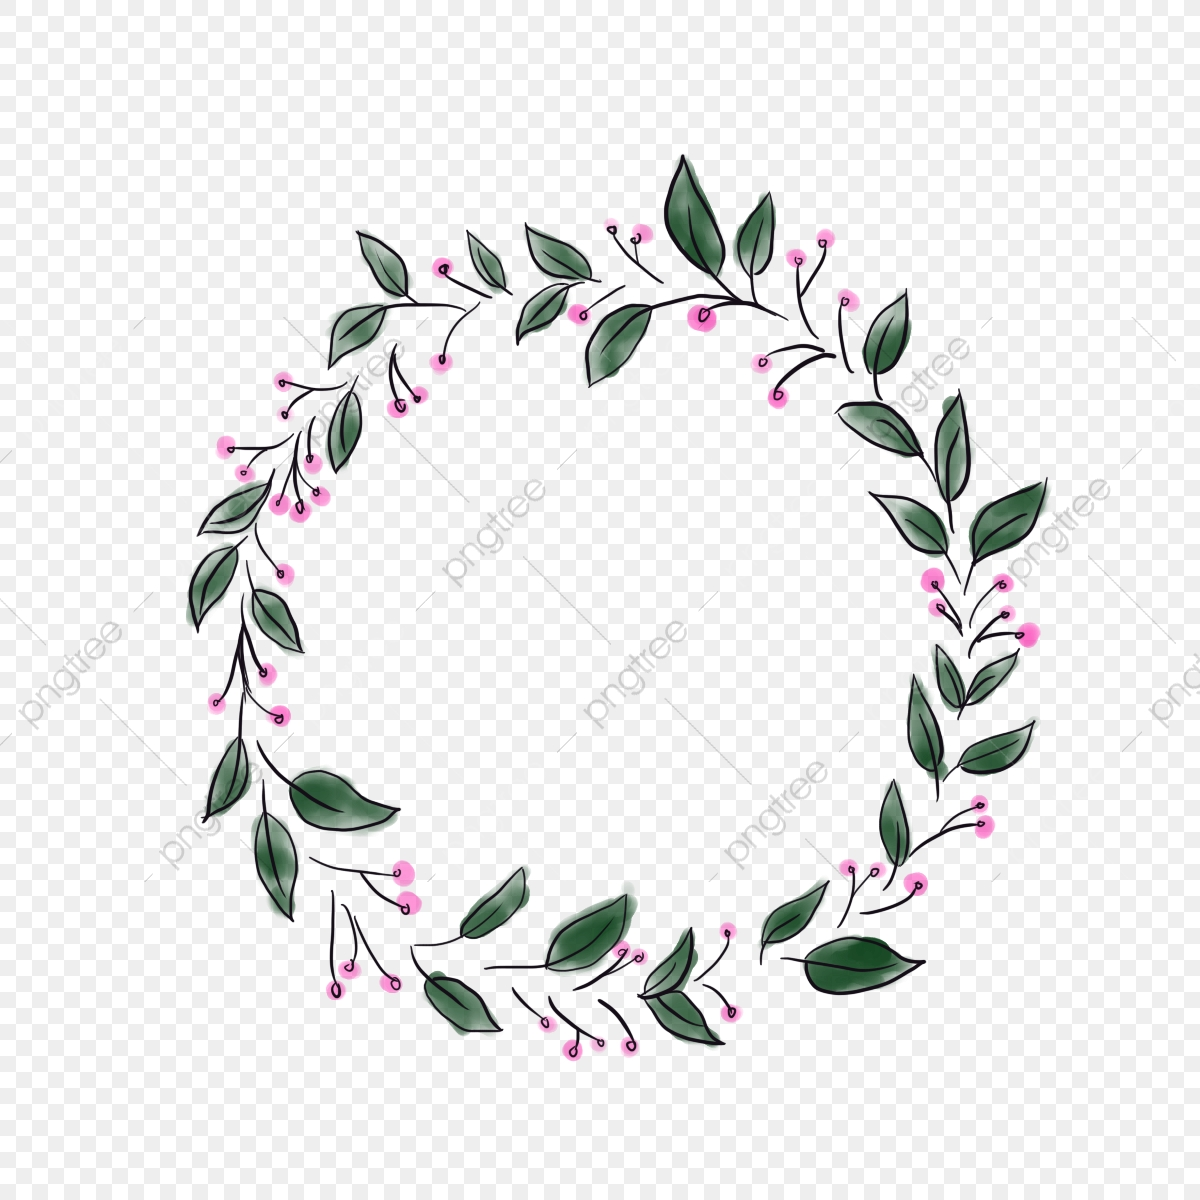 Circle Border Circle Border Plant Png Transparent Clipart Image And Psd File For Free Download